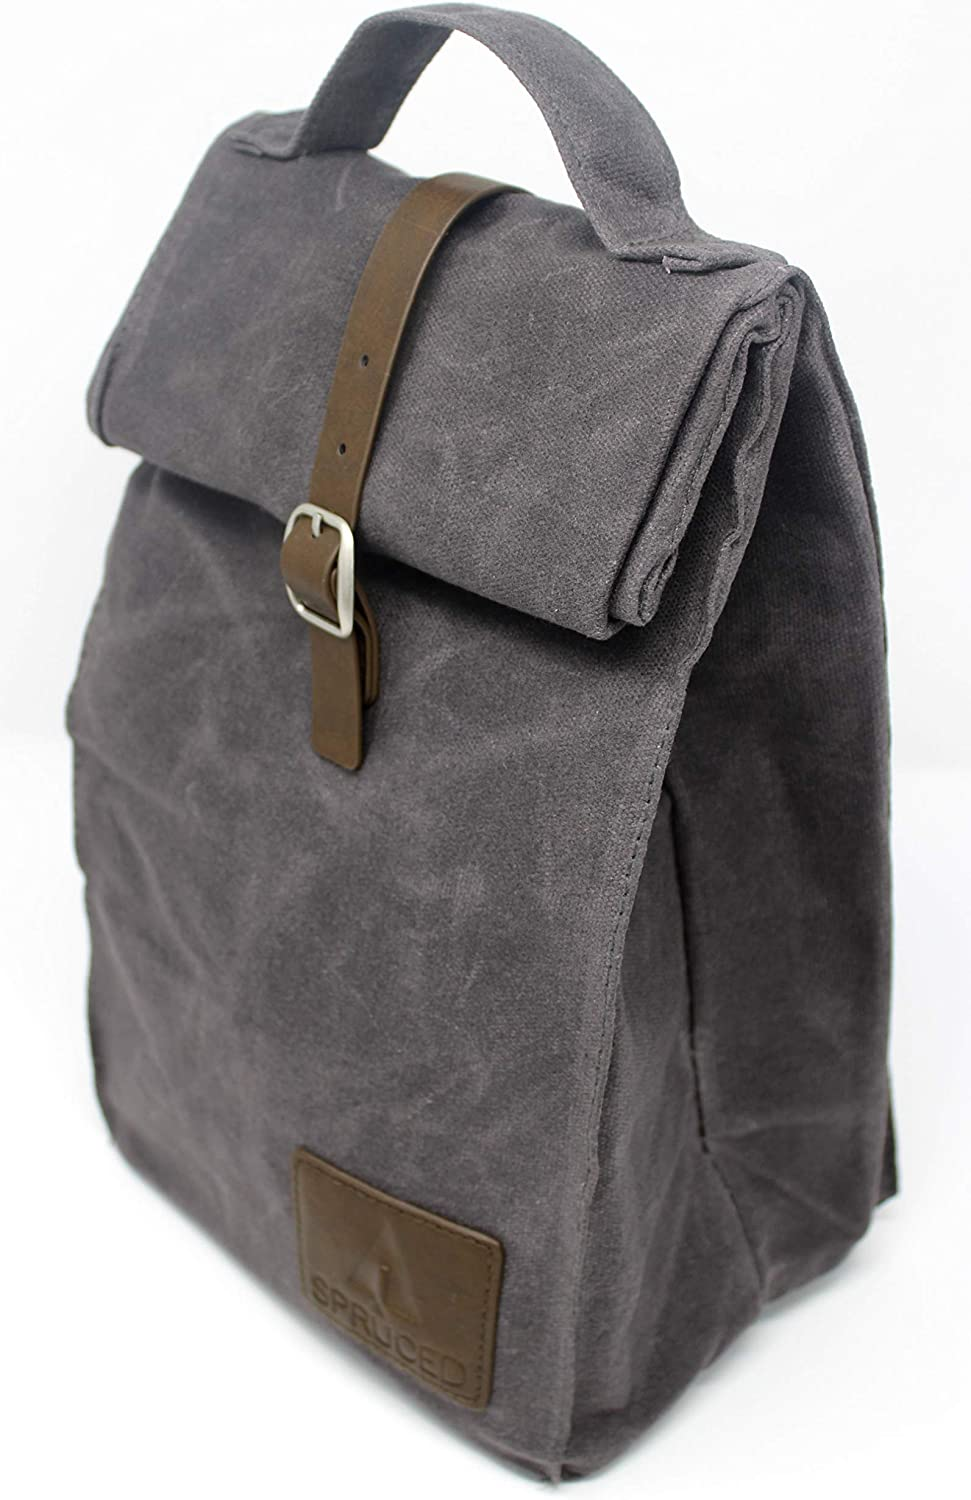 Insulated Waxed Canvas Lunch Bag For Men, Women   Perfect For Work. Professional, Practical & Stylish   Reusable. Keeps Food Cold. Easy To Carry (Slate Gray)